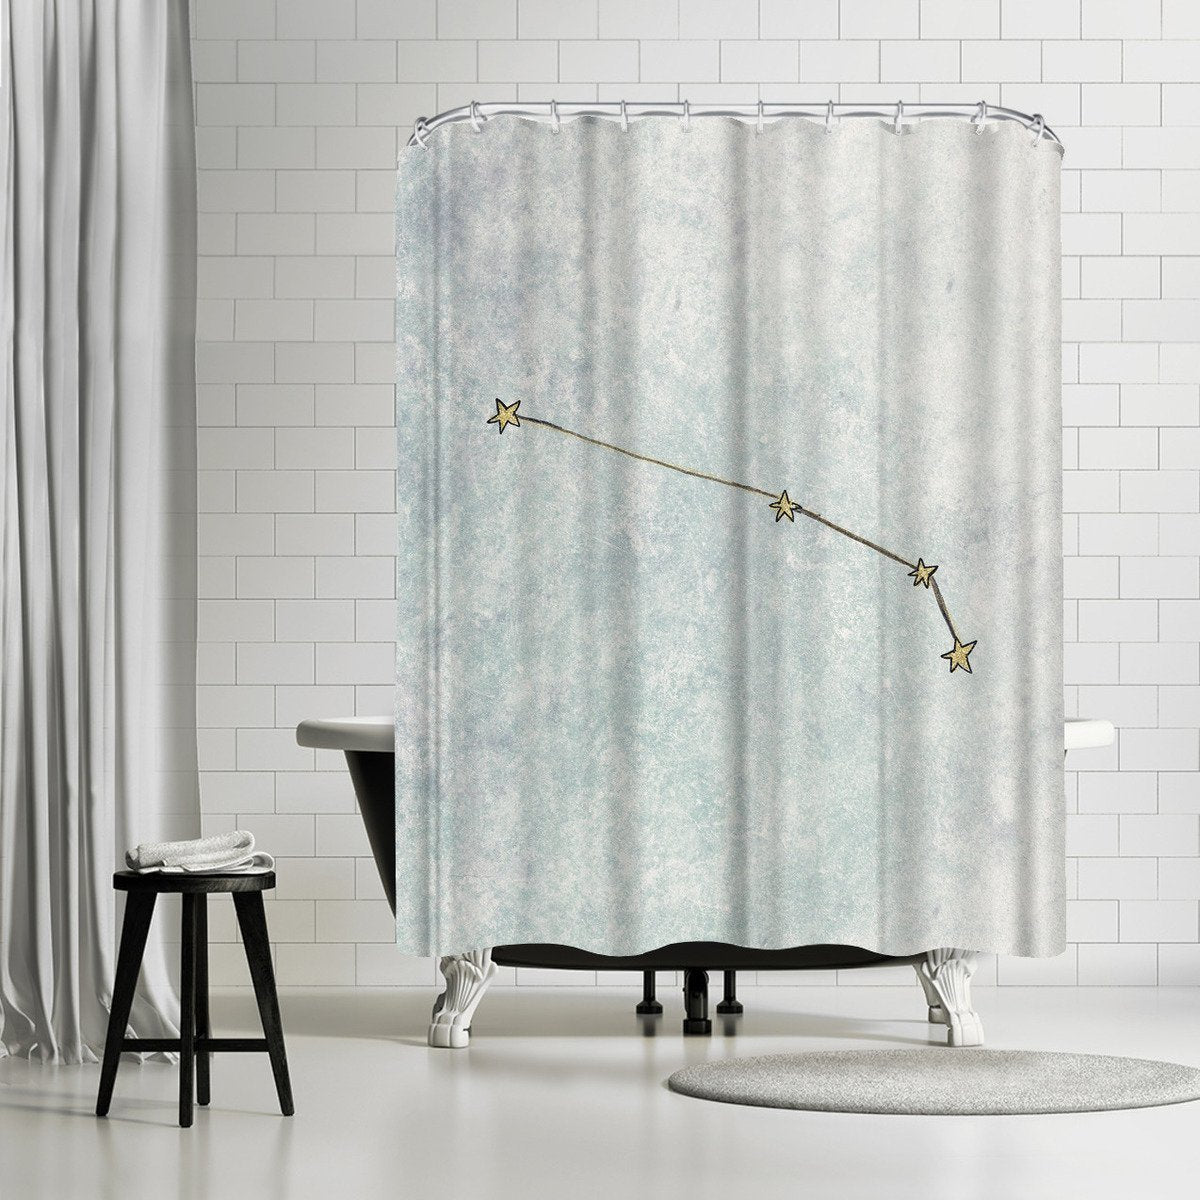 Aries by Leah Flores Shower Curtain - Shower Curtain - Americanflat